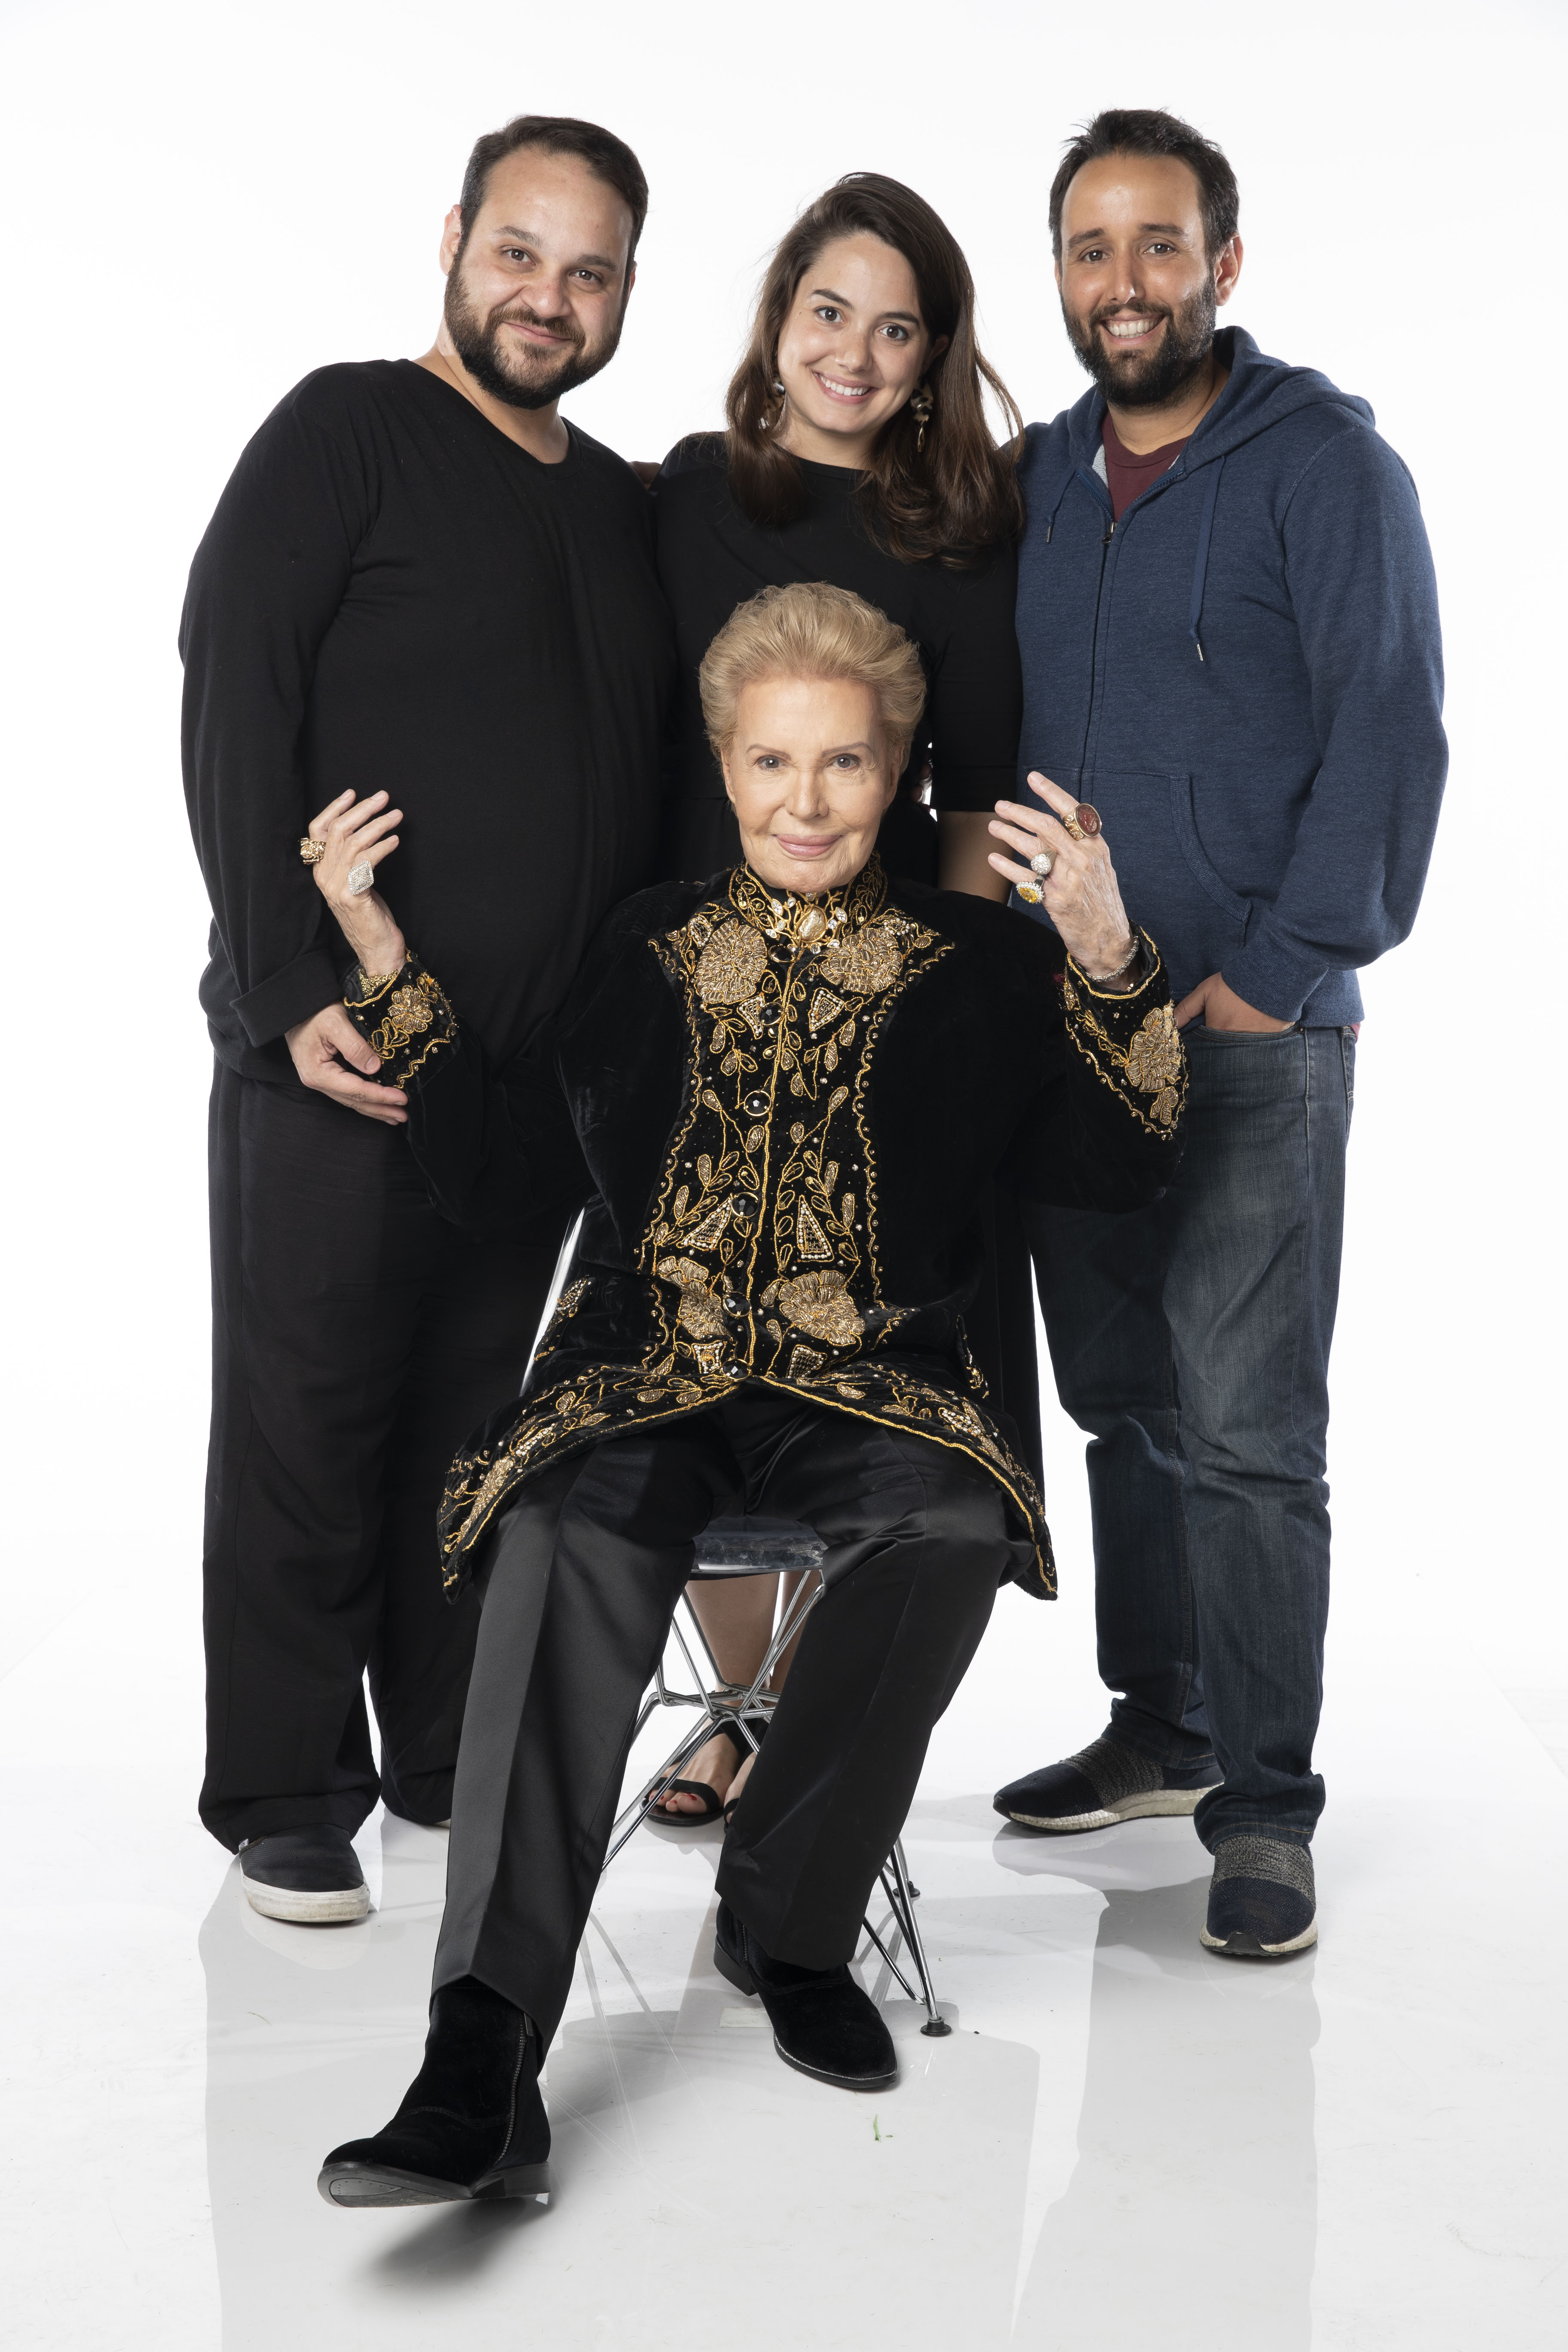 Walter Mercado with filmmakers Cristina Costantini, Kareem Tabsch, and Alex Fumero